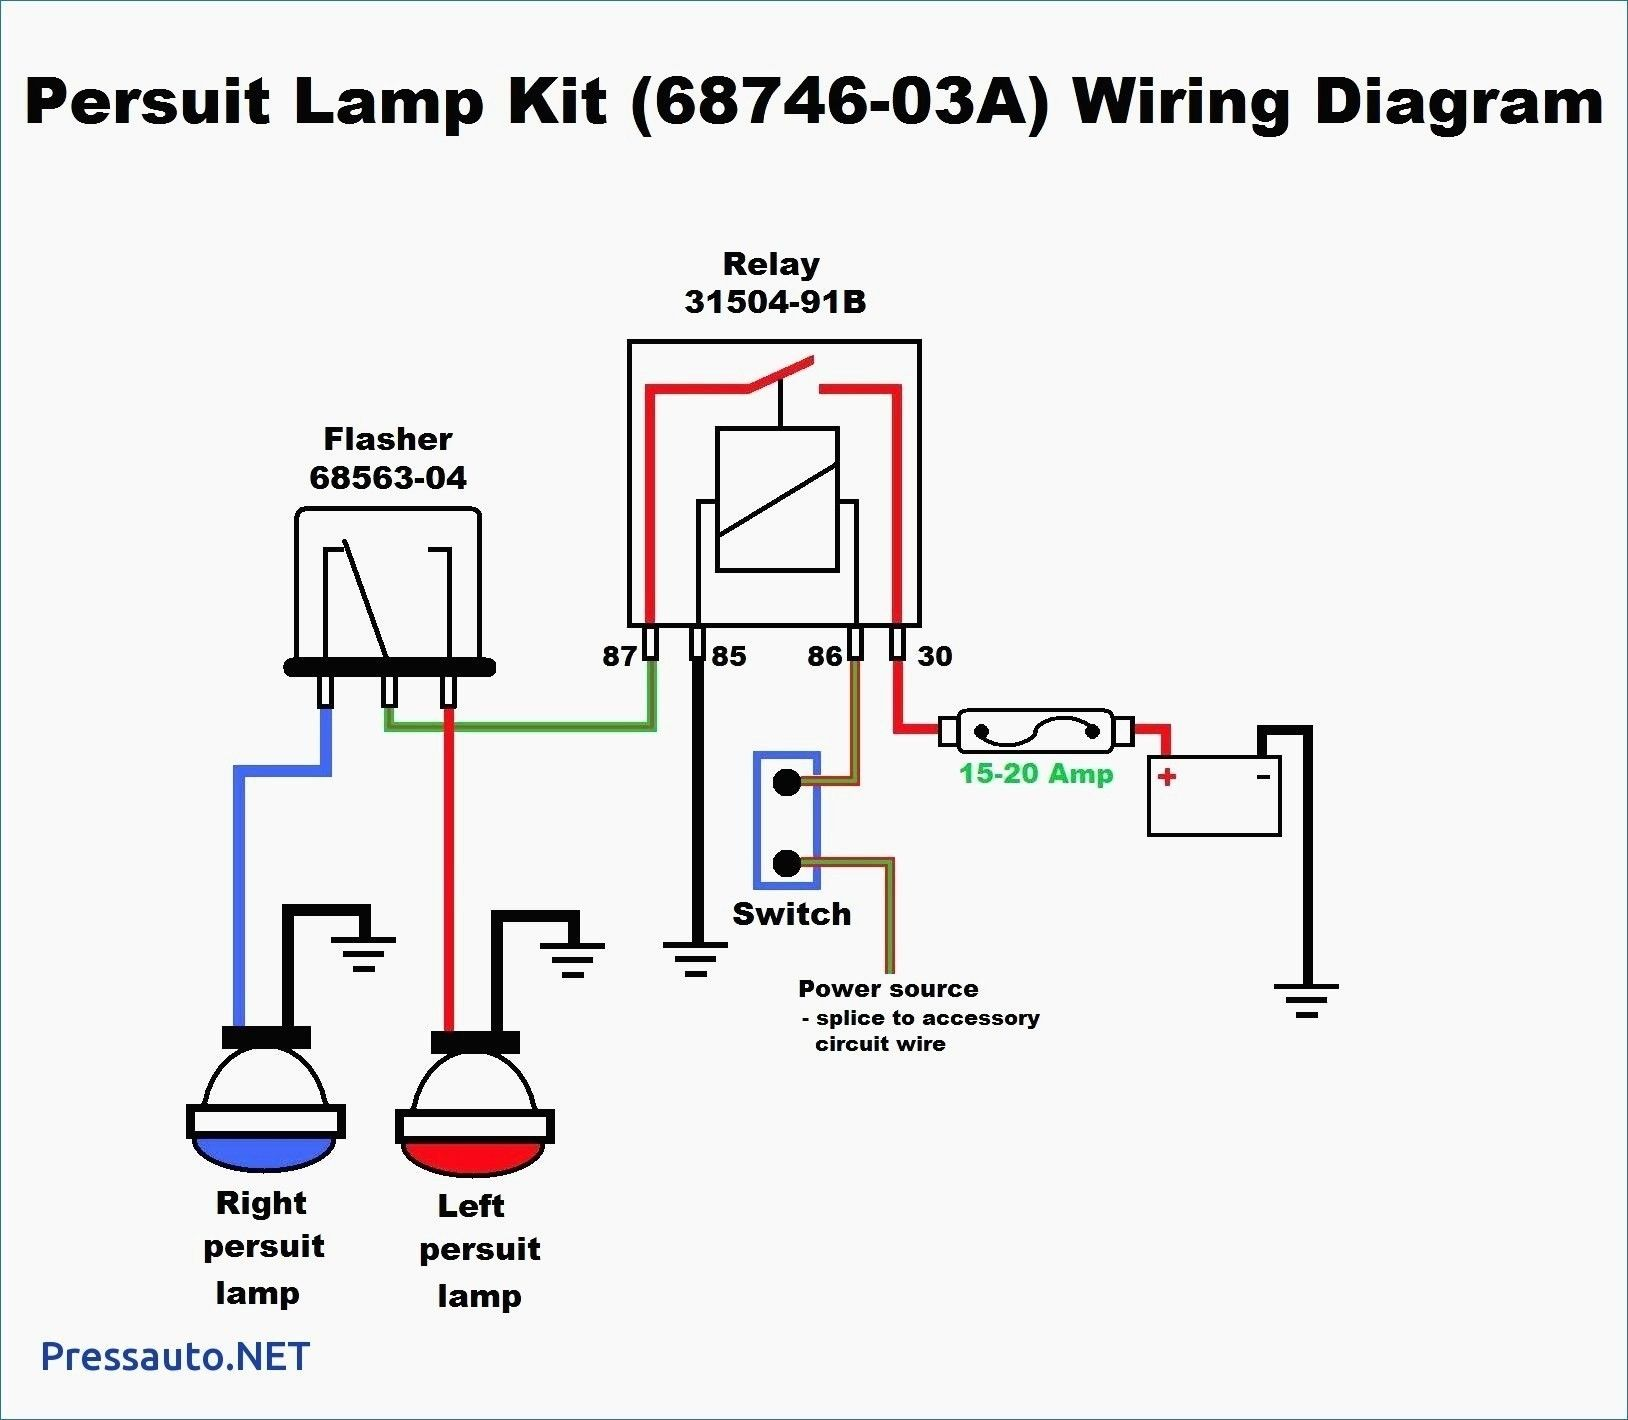 Best Of Wiring Diagram For Light Bar To High Beam Diagrams Digramssample Diagramimages Wiringdiagramsample Wiringdiagram Diagram Light Switch Wiring Relay